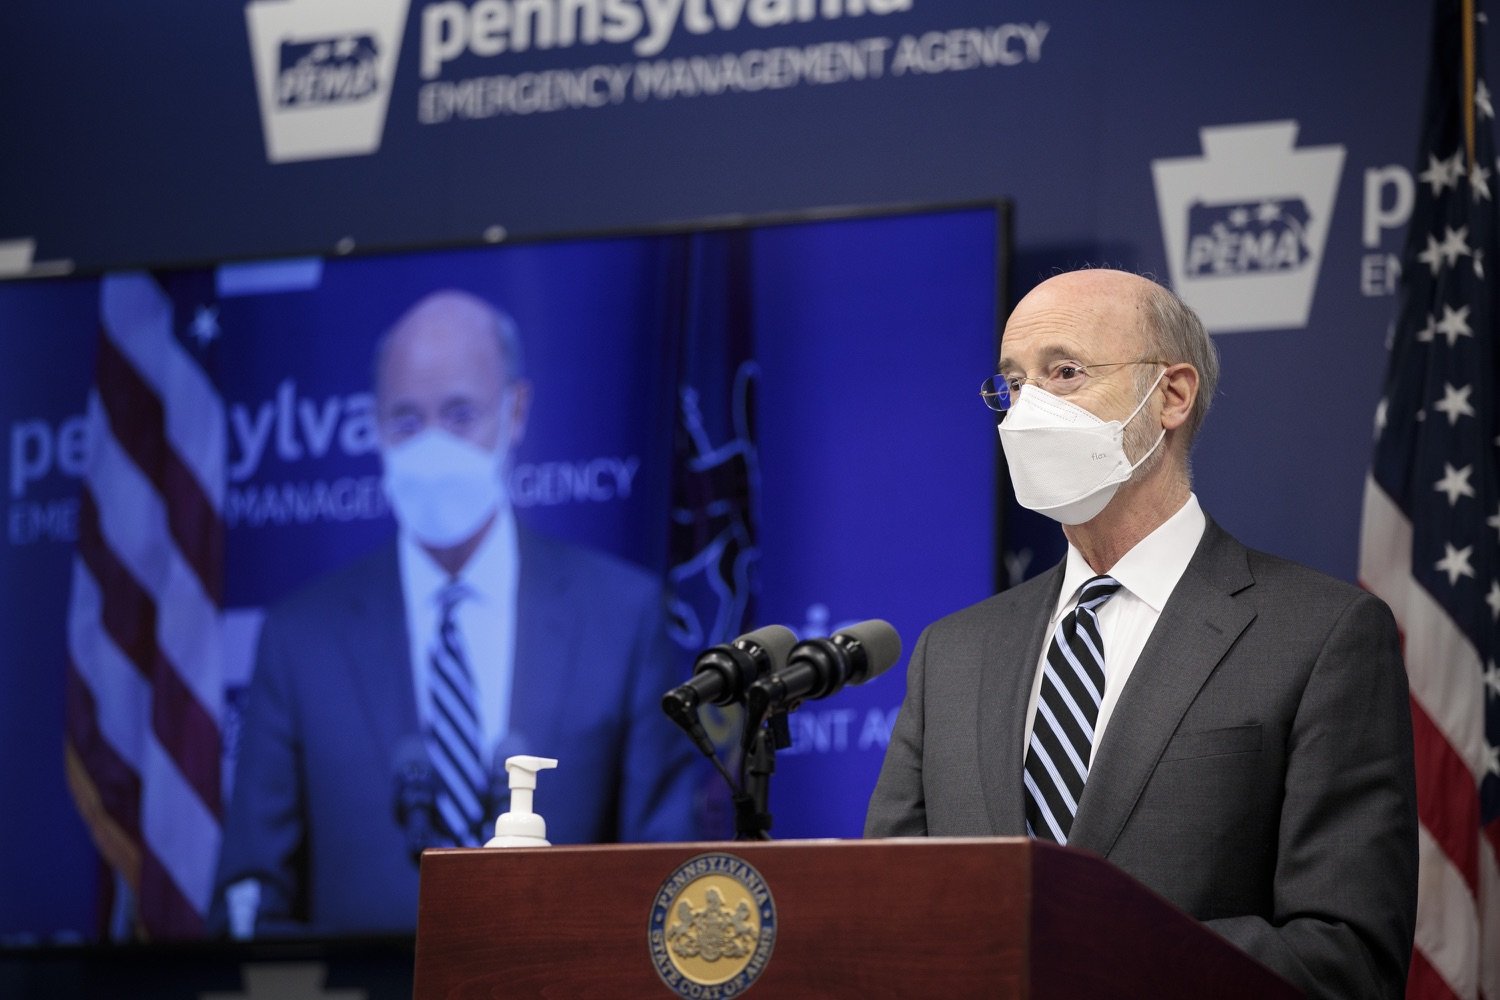 "<a href=""https://filesource.wostreaming.net/commonwealthofpa/photo/18521_gov_minimumWage_dz_05.jpg"" target=""_blank"">⇣ Download Photo<br></a>Pennsylvania Governor Tom Wolf answers questions from the press.  Building on his plan to cut personal income taxes for 2.8 million Pennsylvanians, Governor Tom Wolf wants to help thousands of essential workers struggling to buy food and avoid homelessness because of poverty wages. Today, the governor renewed his call to increase the states embarrassingly low minimum wage to $12 per hour on July 1, with annual increases of $0.50 until reaching $15 per hour on July 1, 2027. FEBRUARY 09, 2021 - HARRISBURG, PA"